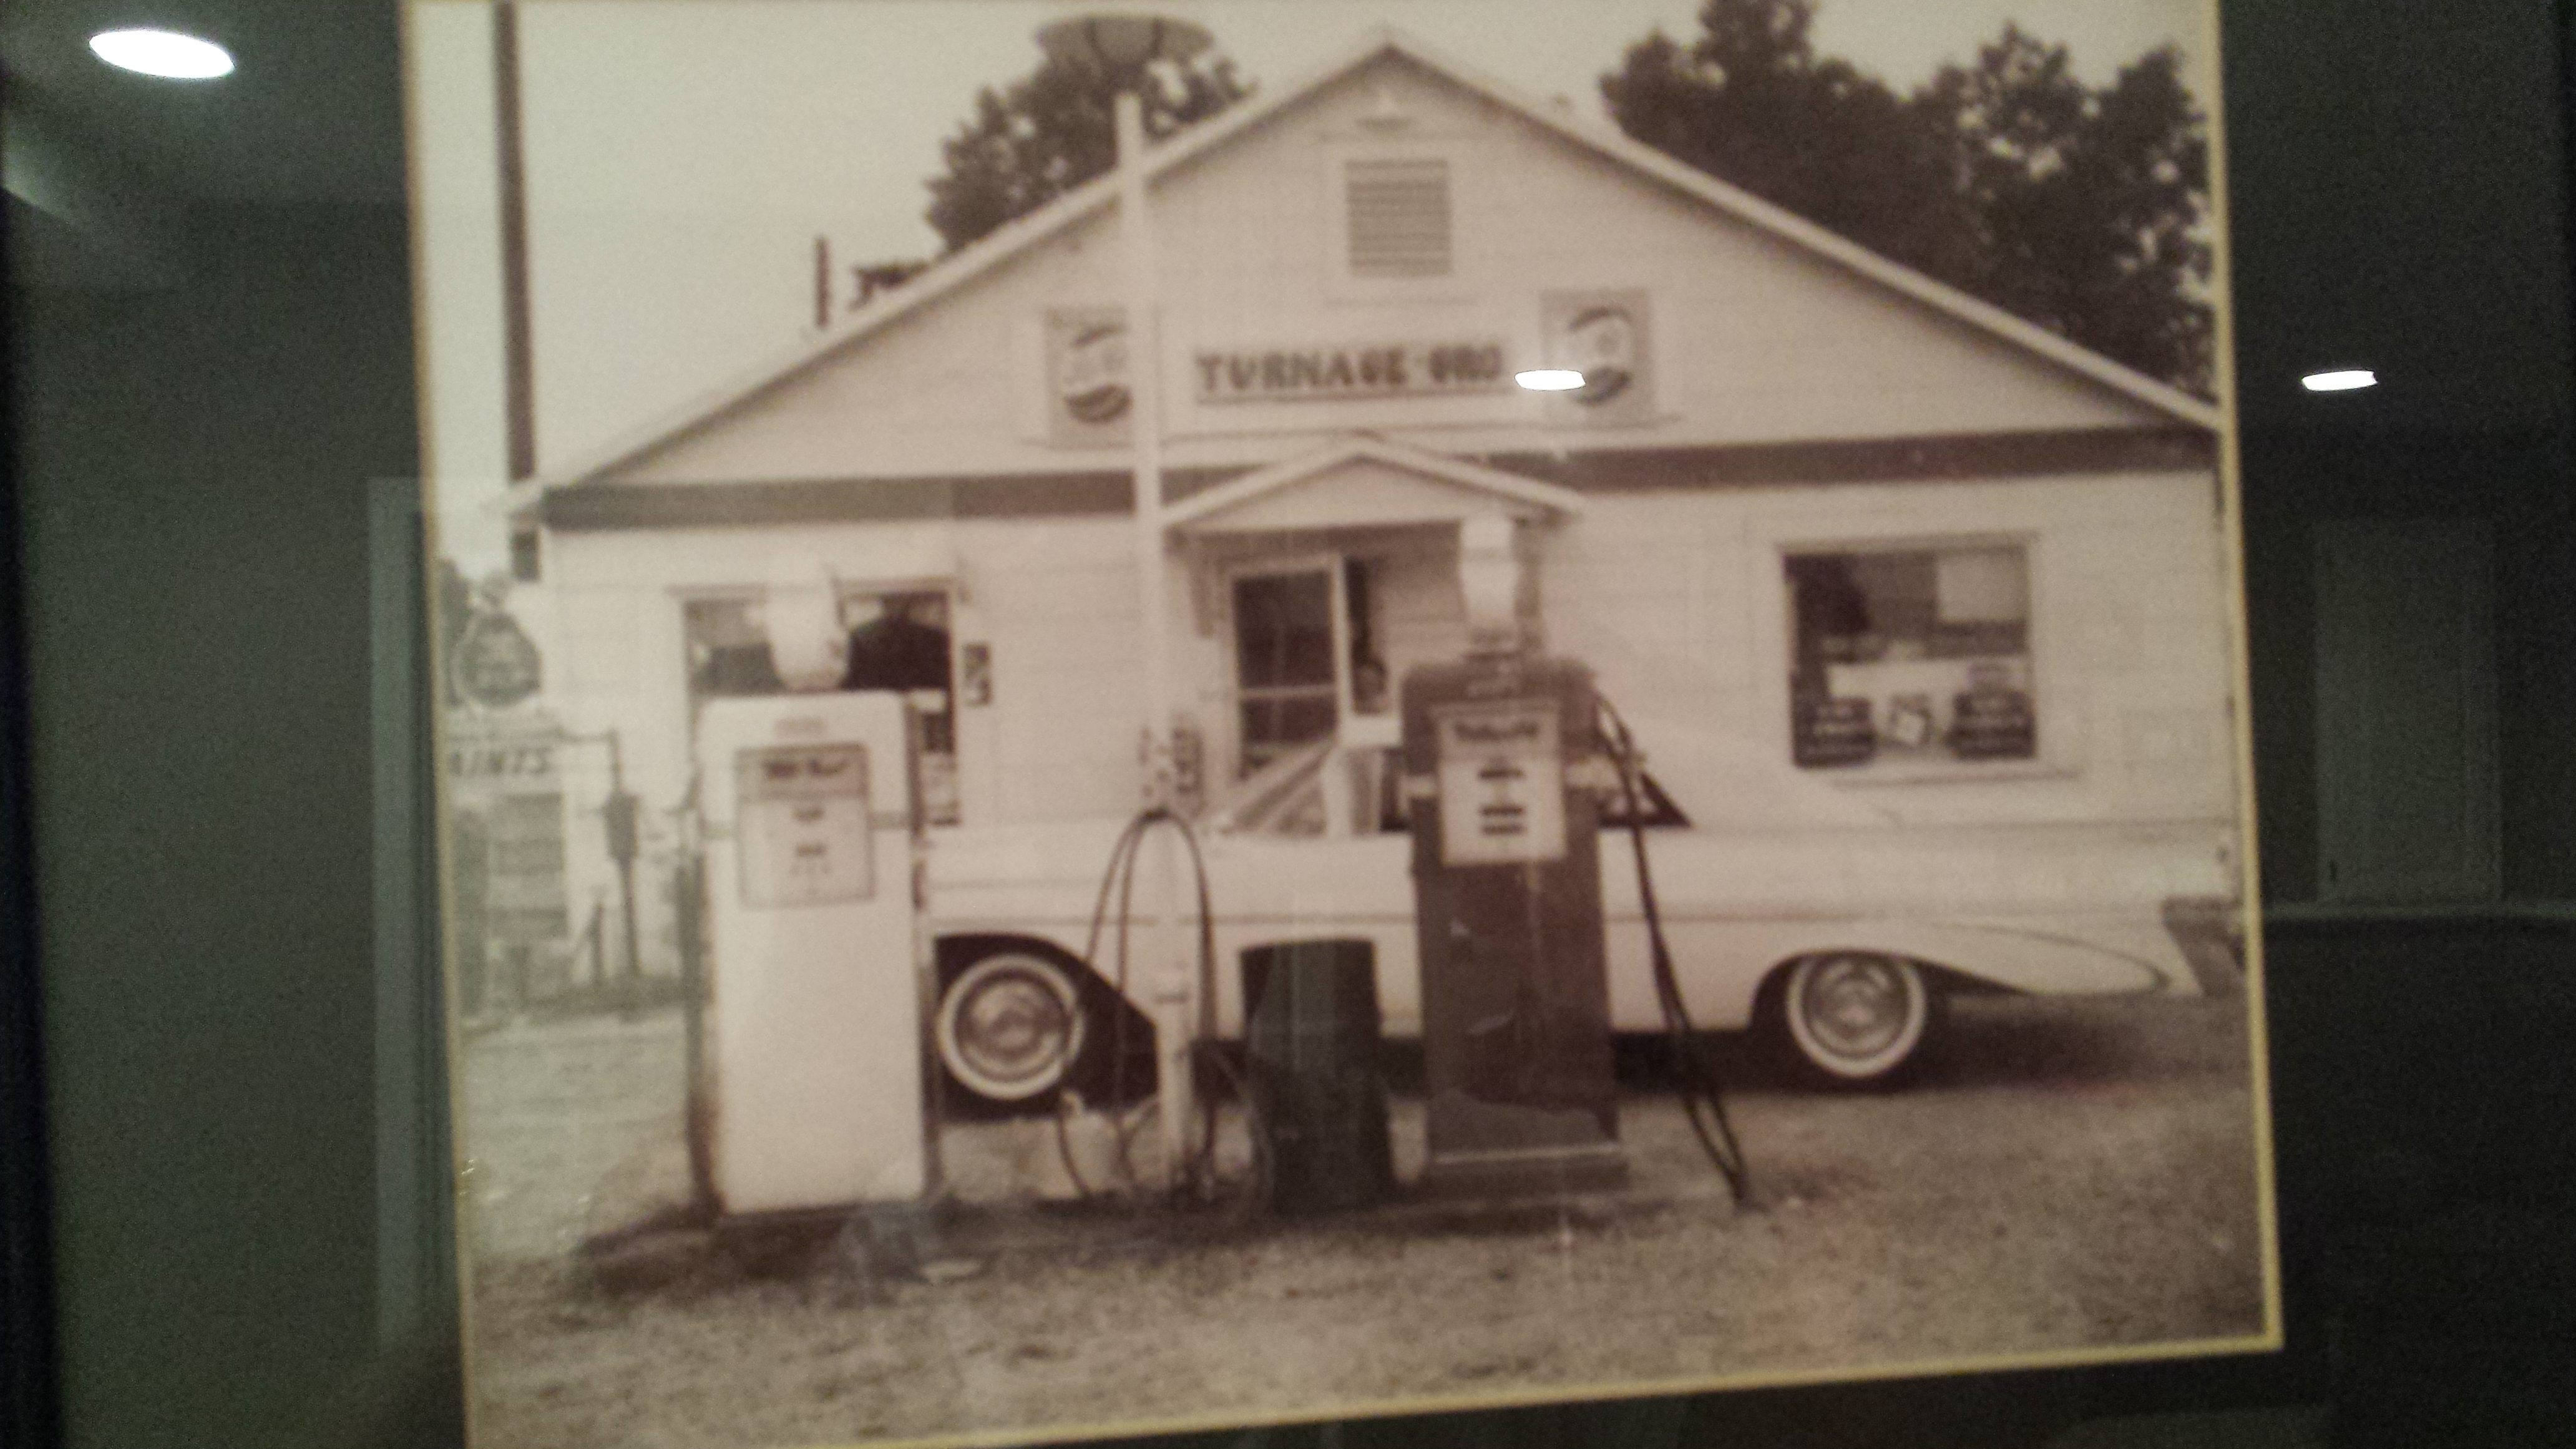 Vintage photo of small store with gas pump and classic car.